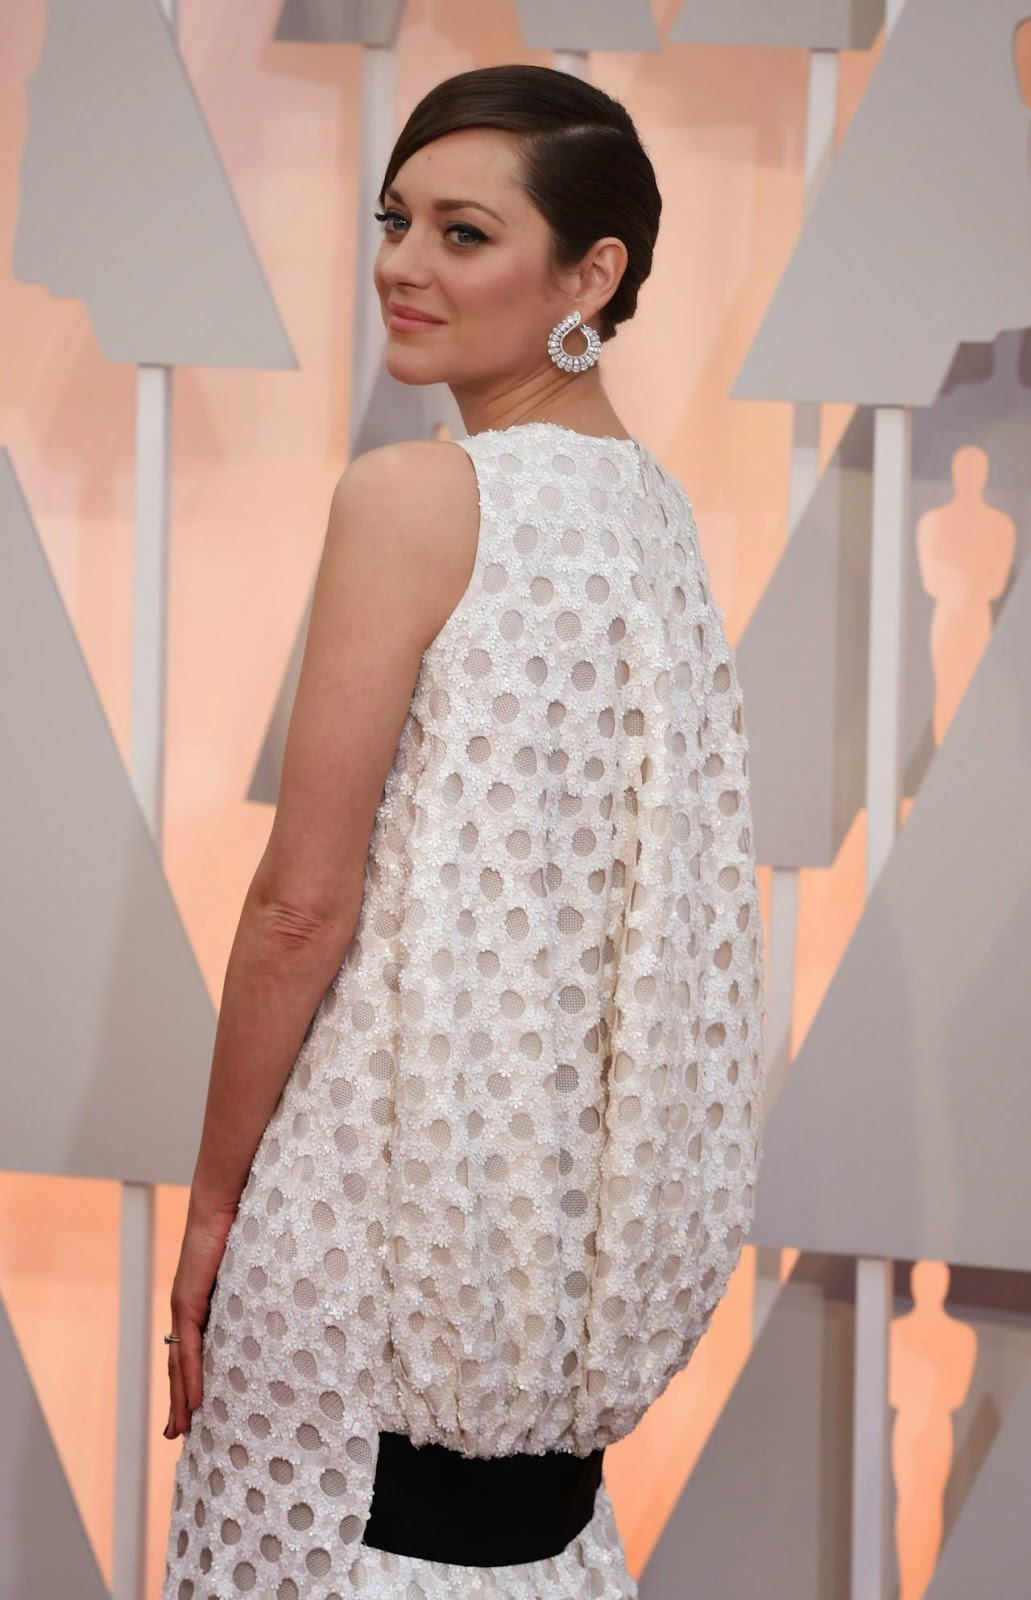 Marion Cotillard in a sequinned polka-dotted Dior dress at the 2015 Oscars in Hollywood